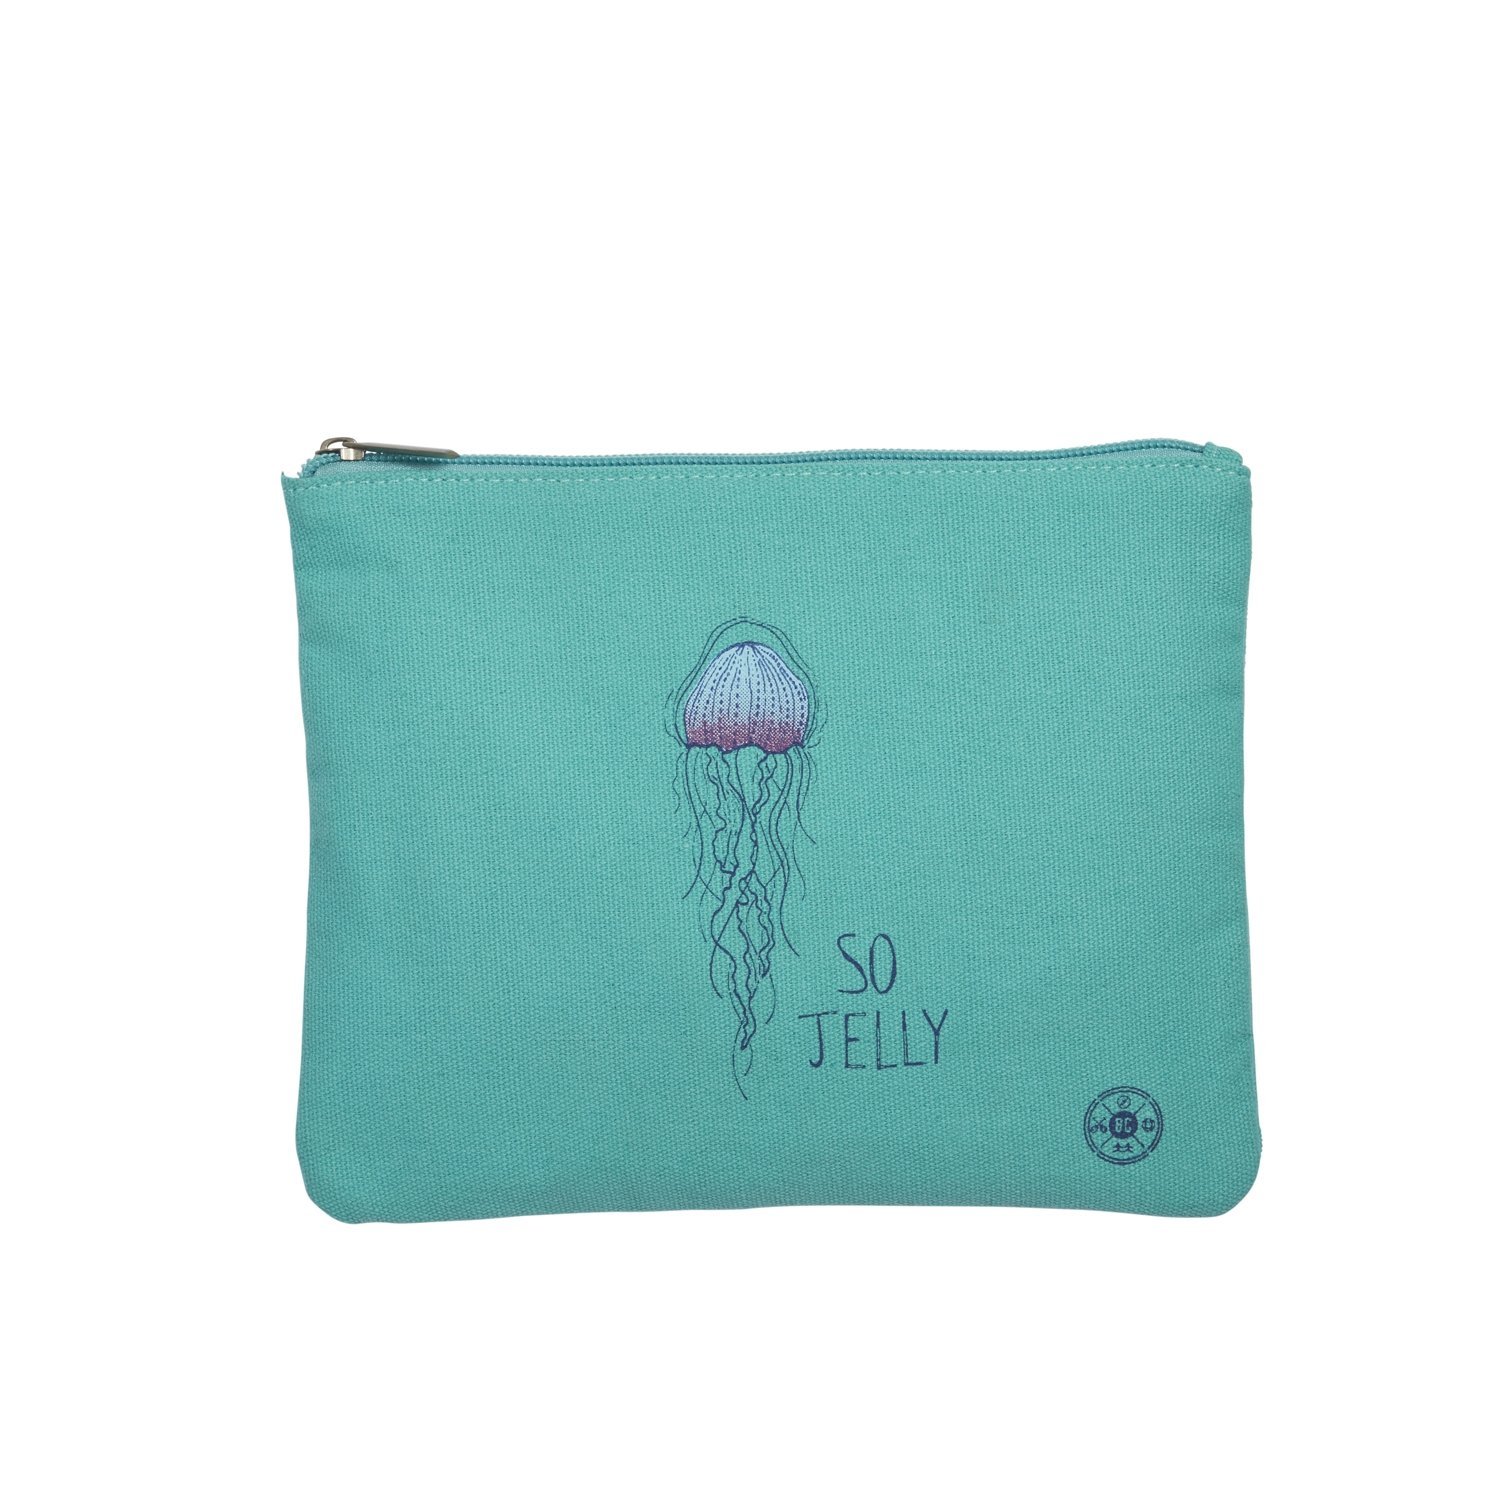 Beachcombers 8.5 Inches x 7 Inches x .25 Inches Teal So Jelly Zip Top Bag Apparel Accessories